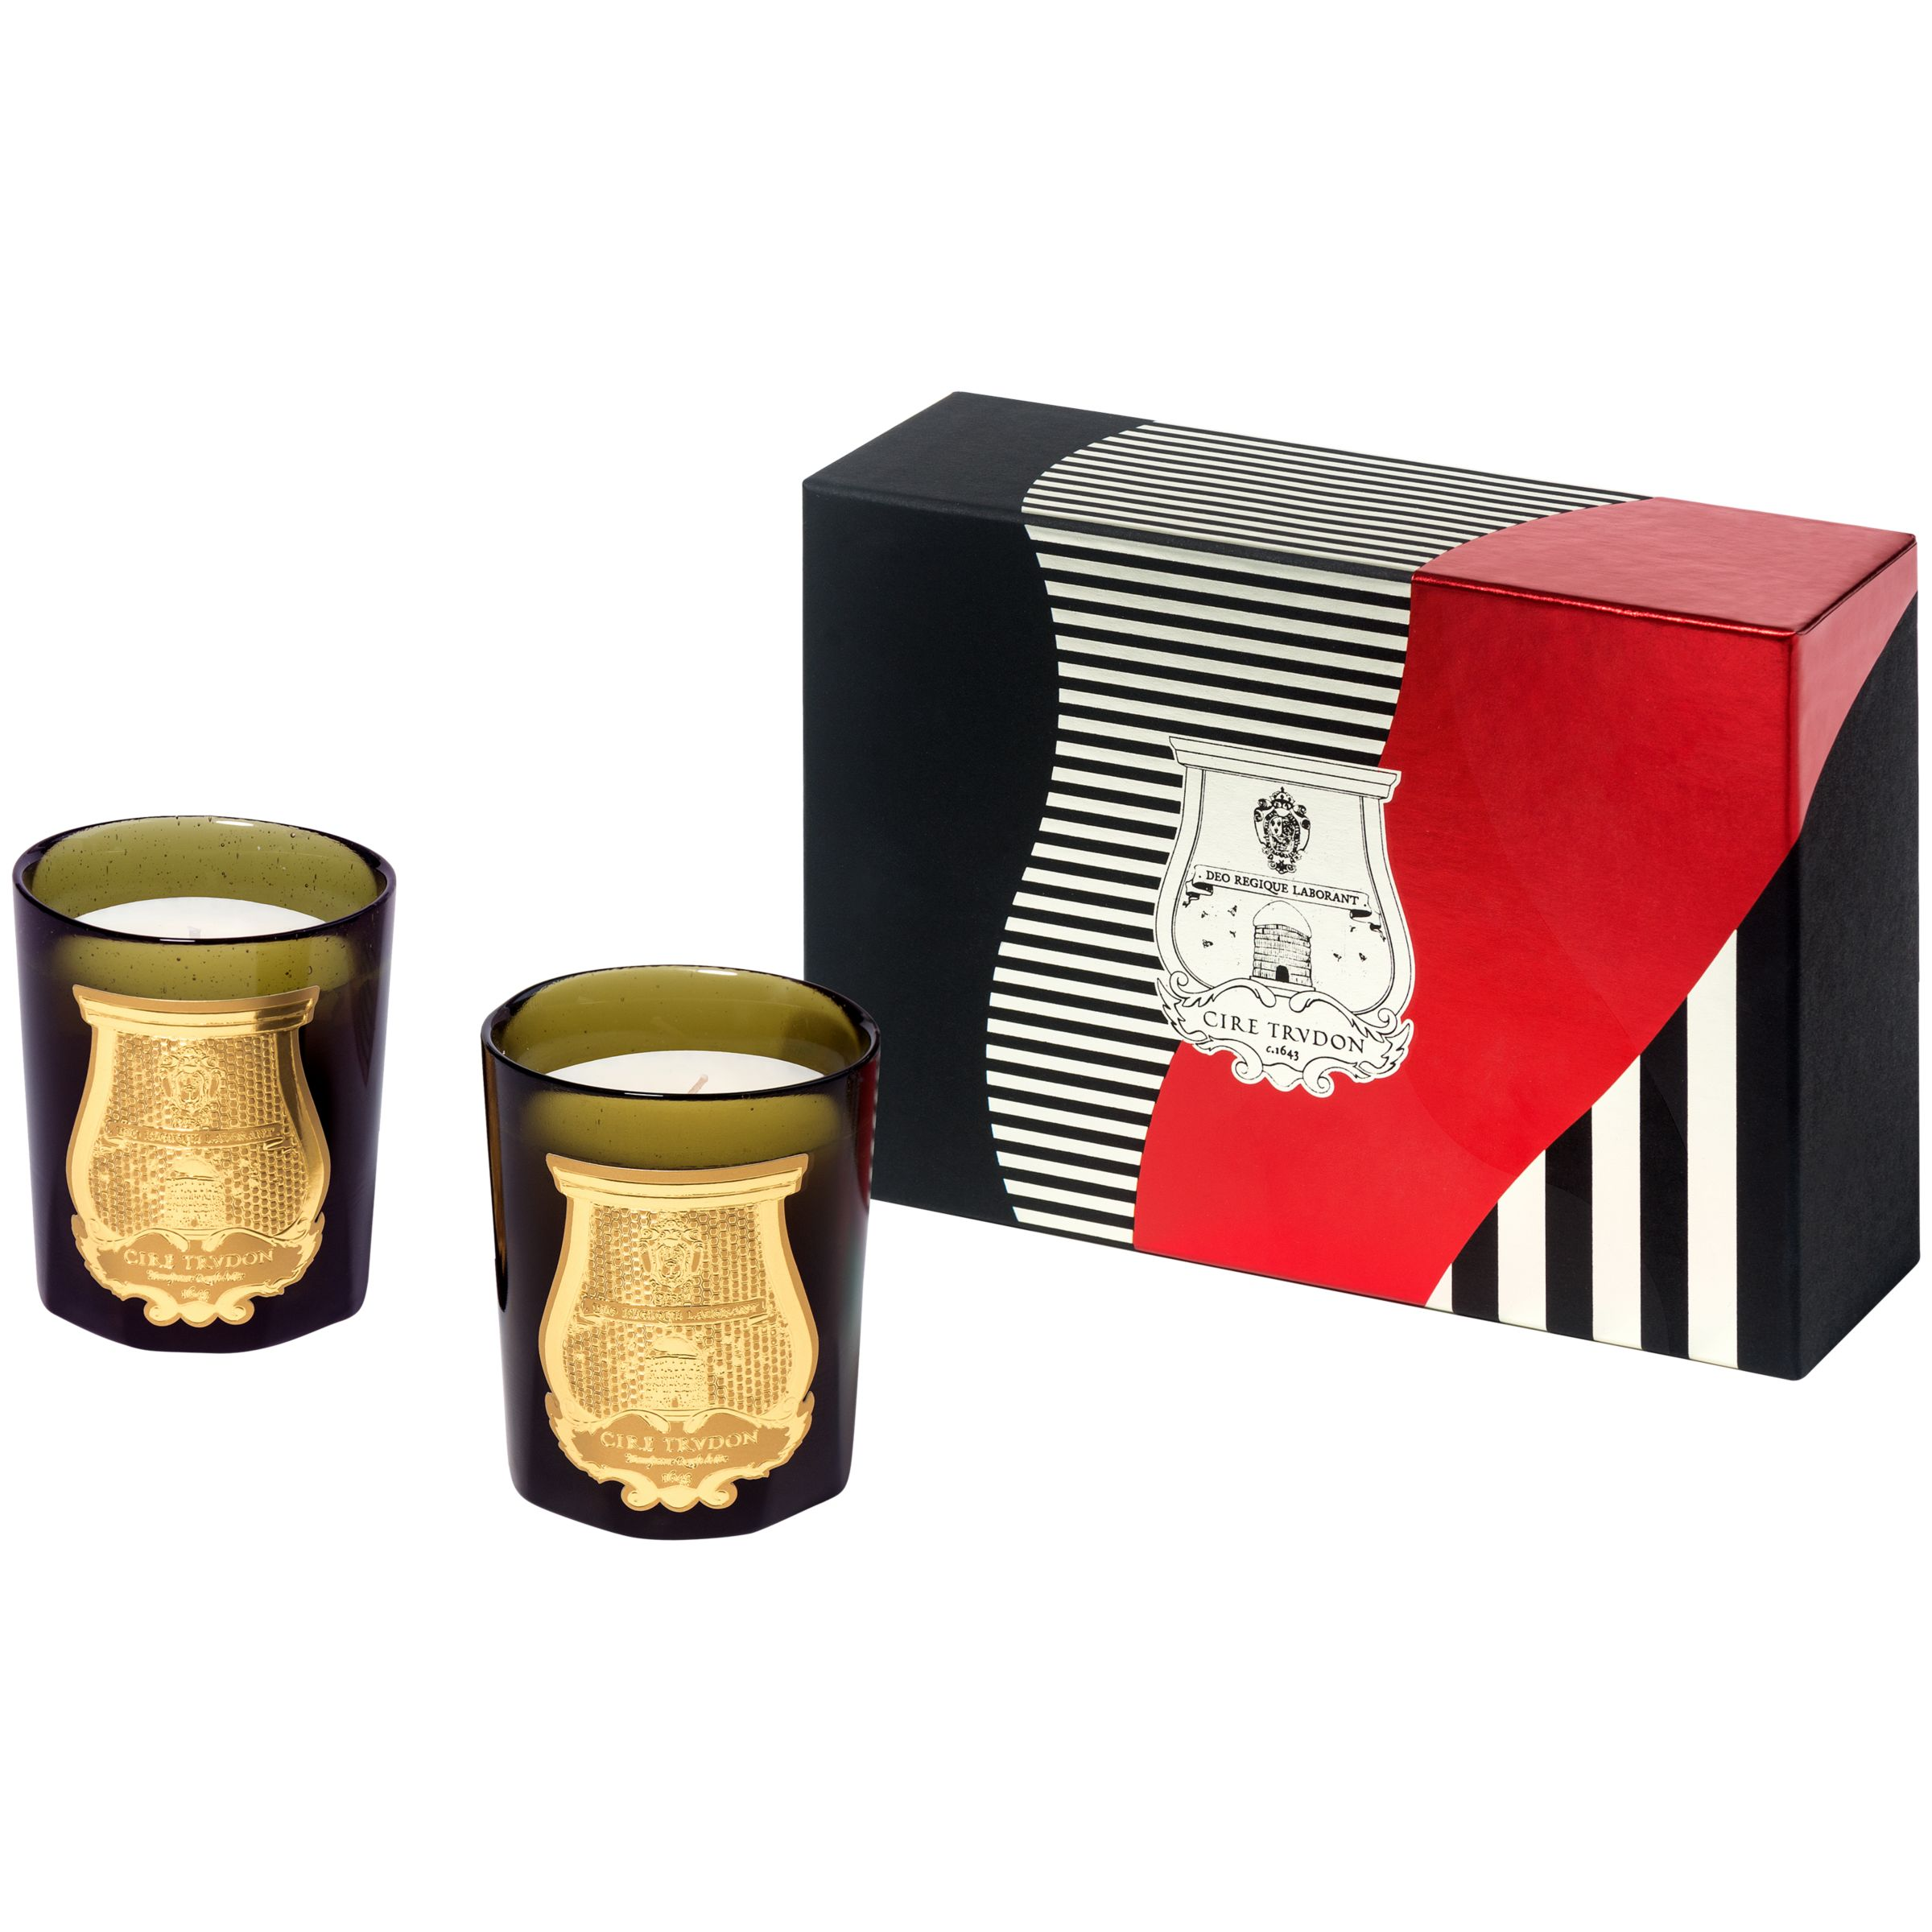 Cire Trudon Cire Trudon Duo Odeurs Revolutionaries Scented Candle, 375g